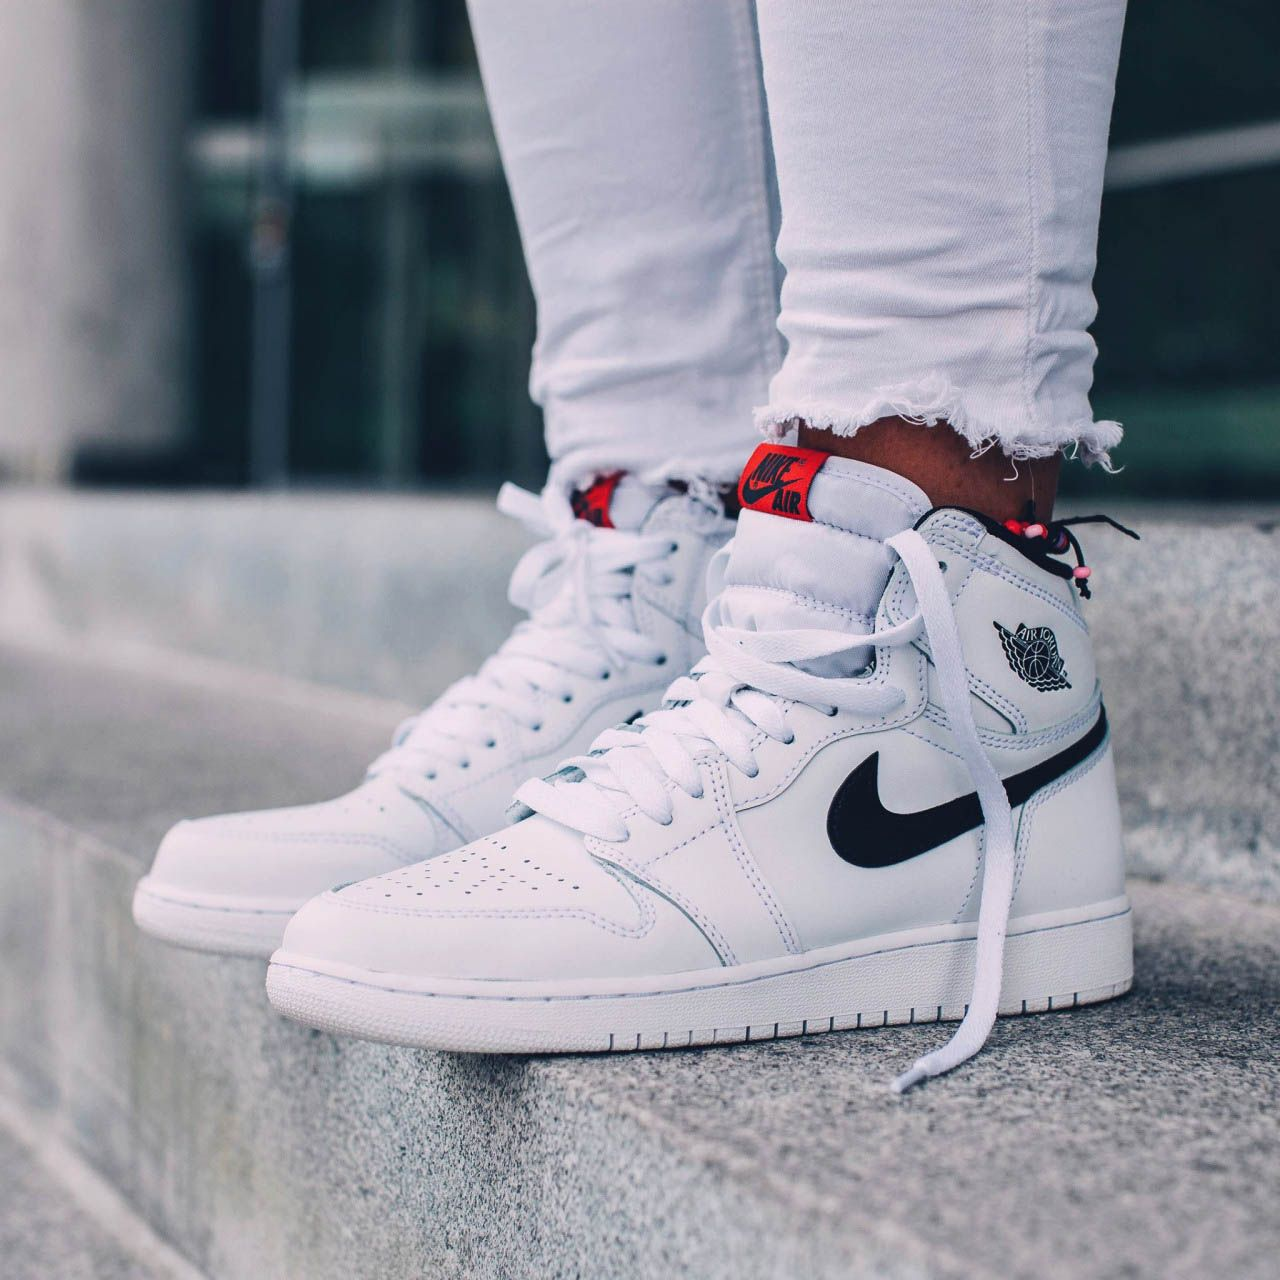 d6f83d26cf21 NIKE Air Jordan 1 Retro High OG  White x Black x Touch of Red ...